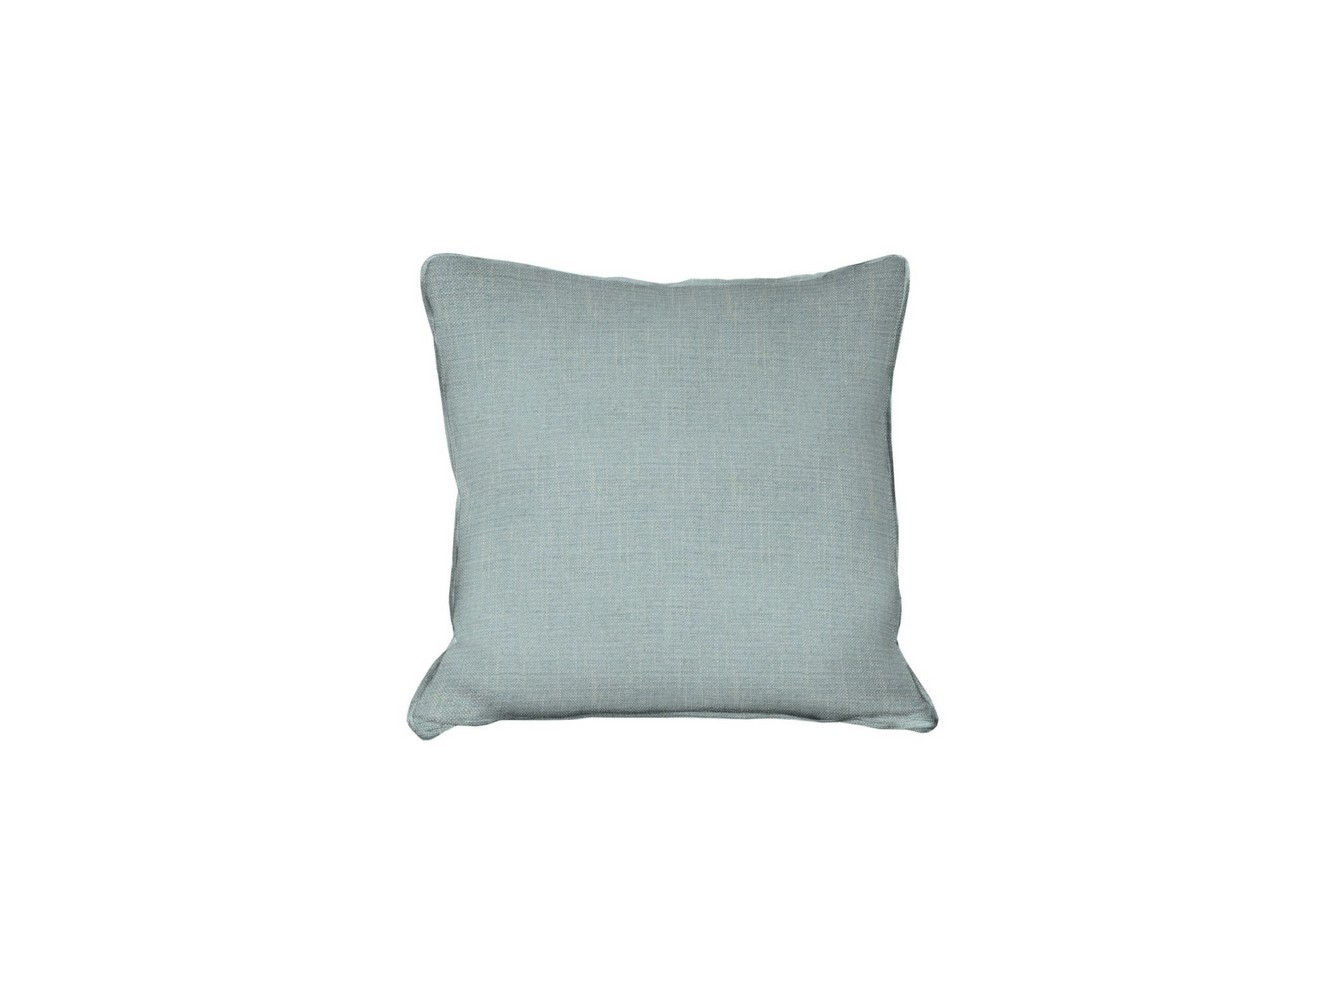 Extra Scatter Cushions - Fabric Eggshell Blue